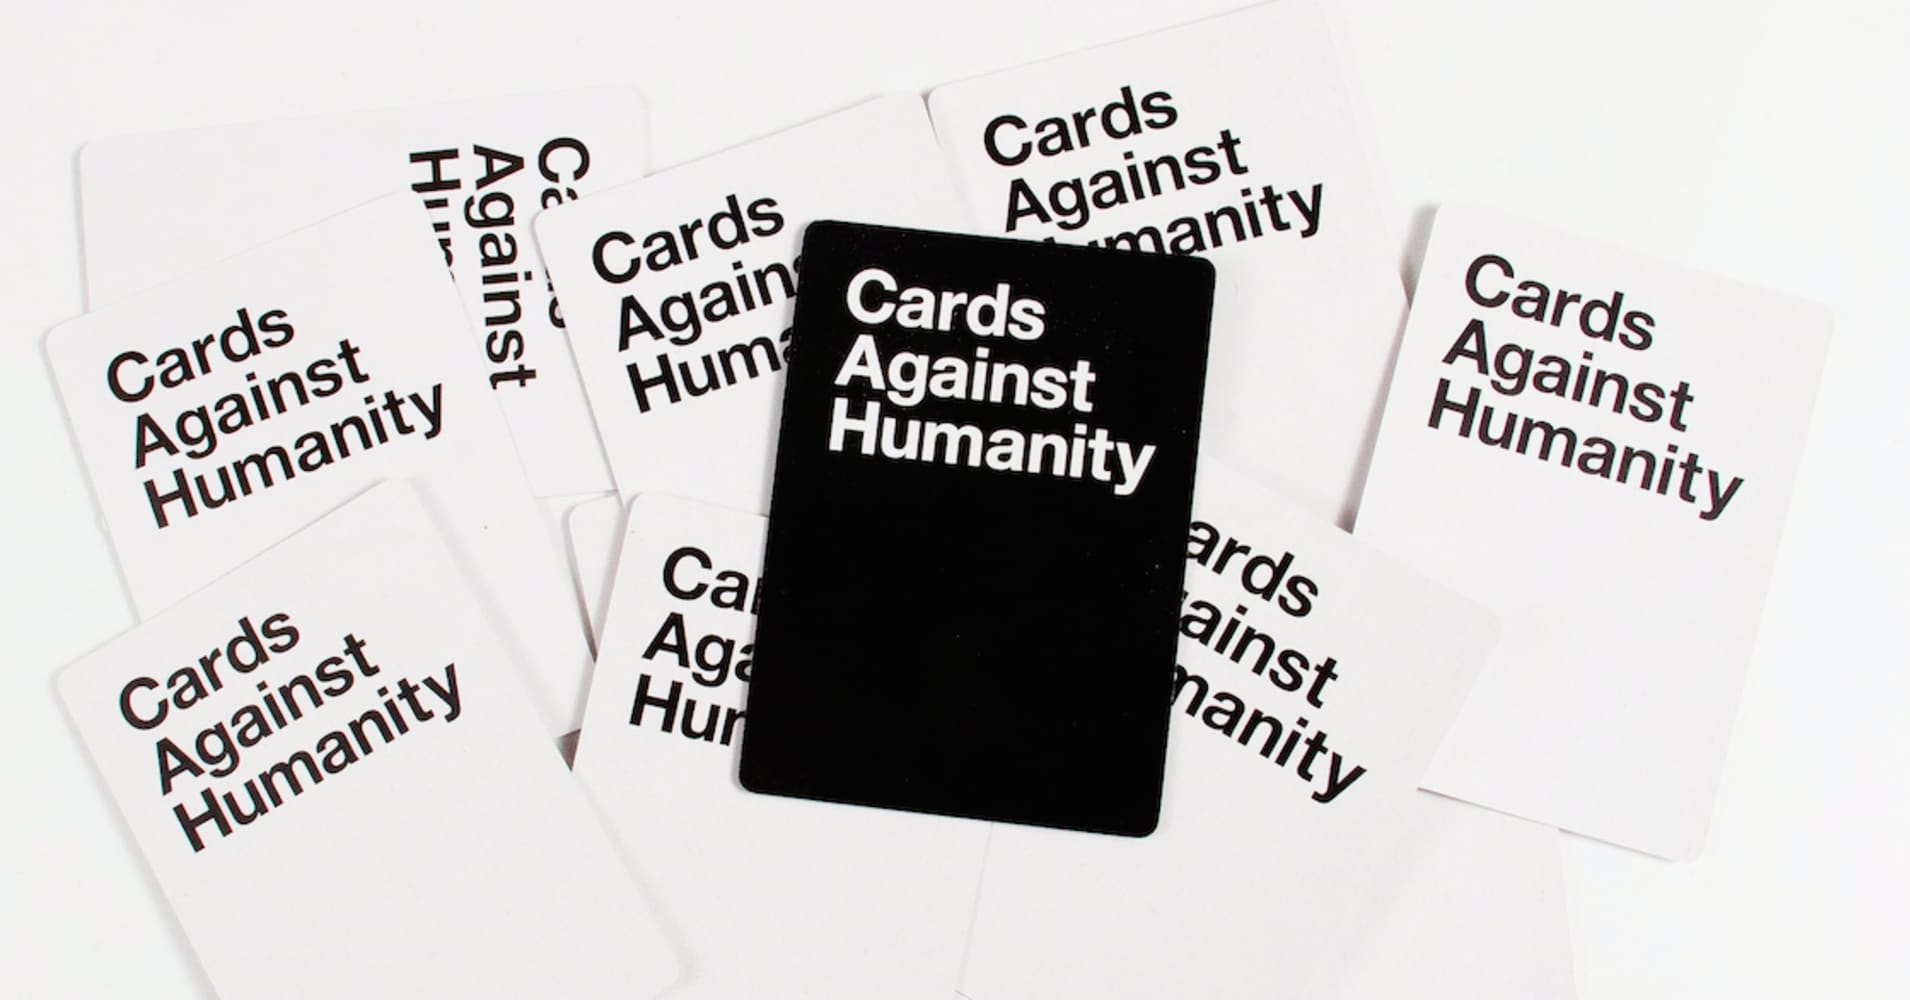 Image of: Buzzfeed You Could Earn 40 An Hour Writing Jokes For Cards Against Humanity From Your Couch Cnbccom How To Get Paid 40 An Hour Writing Jokes For Cards Against Humanity